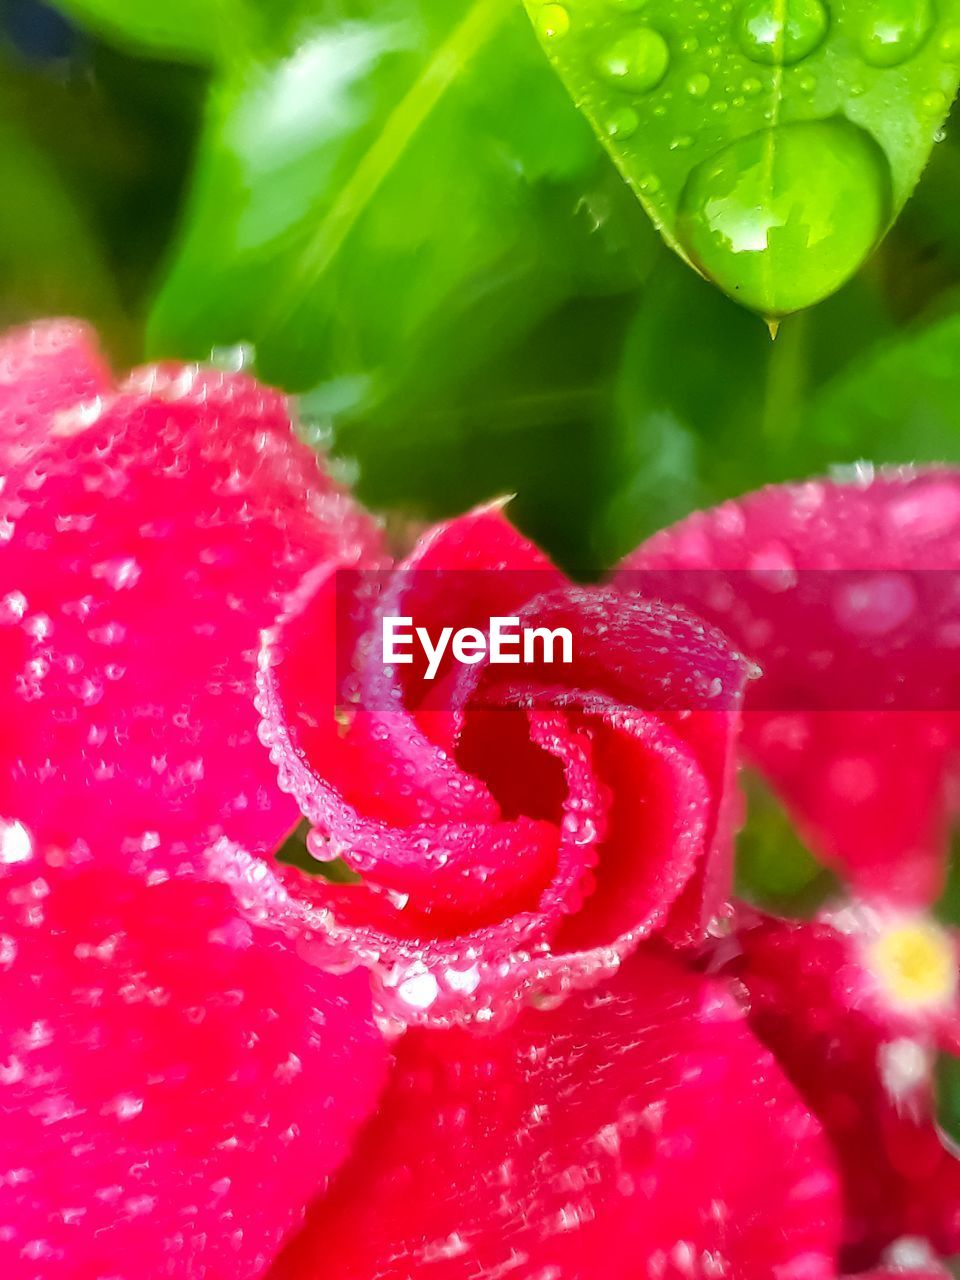 plant, close-up, flower, red, freshness, flowering plant, vulnerability, beauty in nature, fragility, pink color, growth, inflorescence, flower head, no people, nature, petal, day, wet, water, selective focus, dew